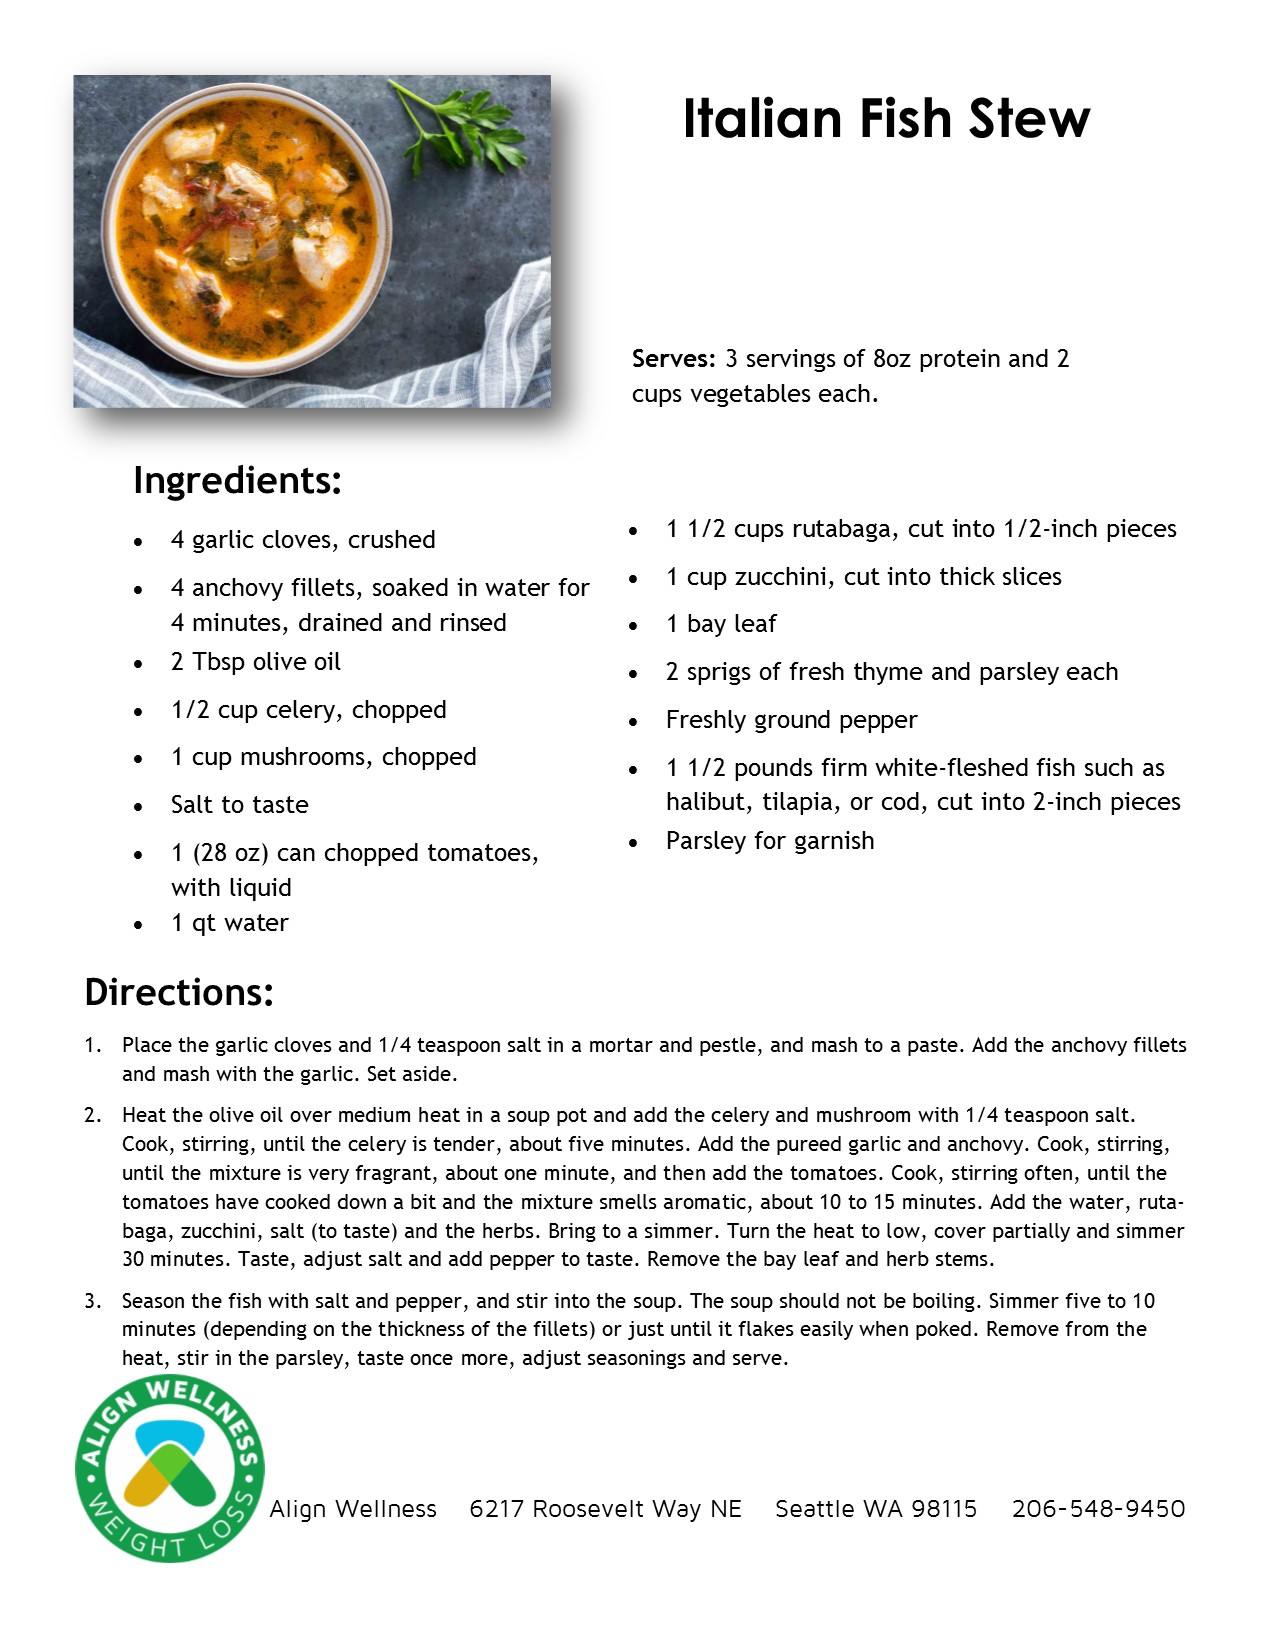 Italian Fish Stew Ideal Protein Recipe